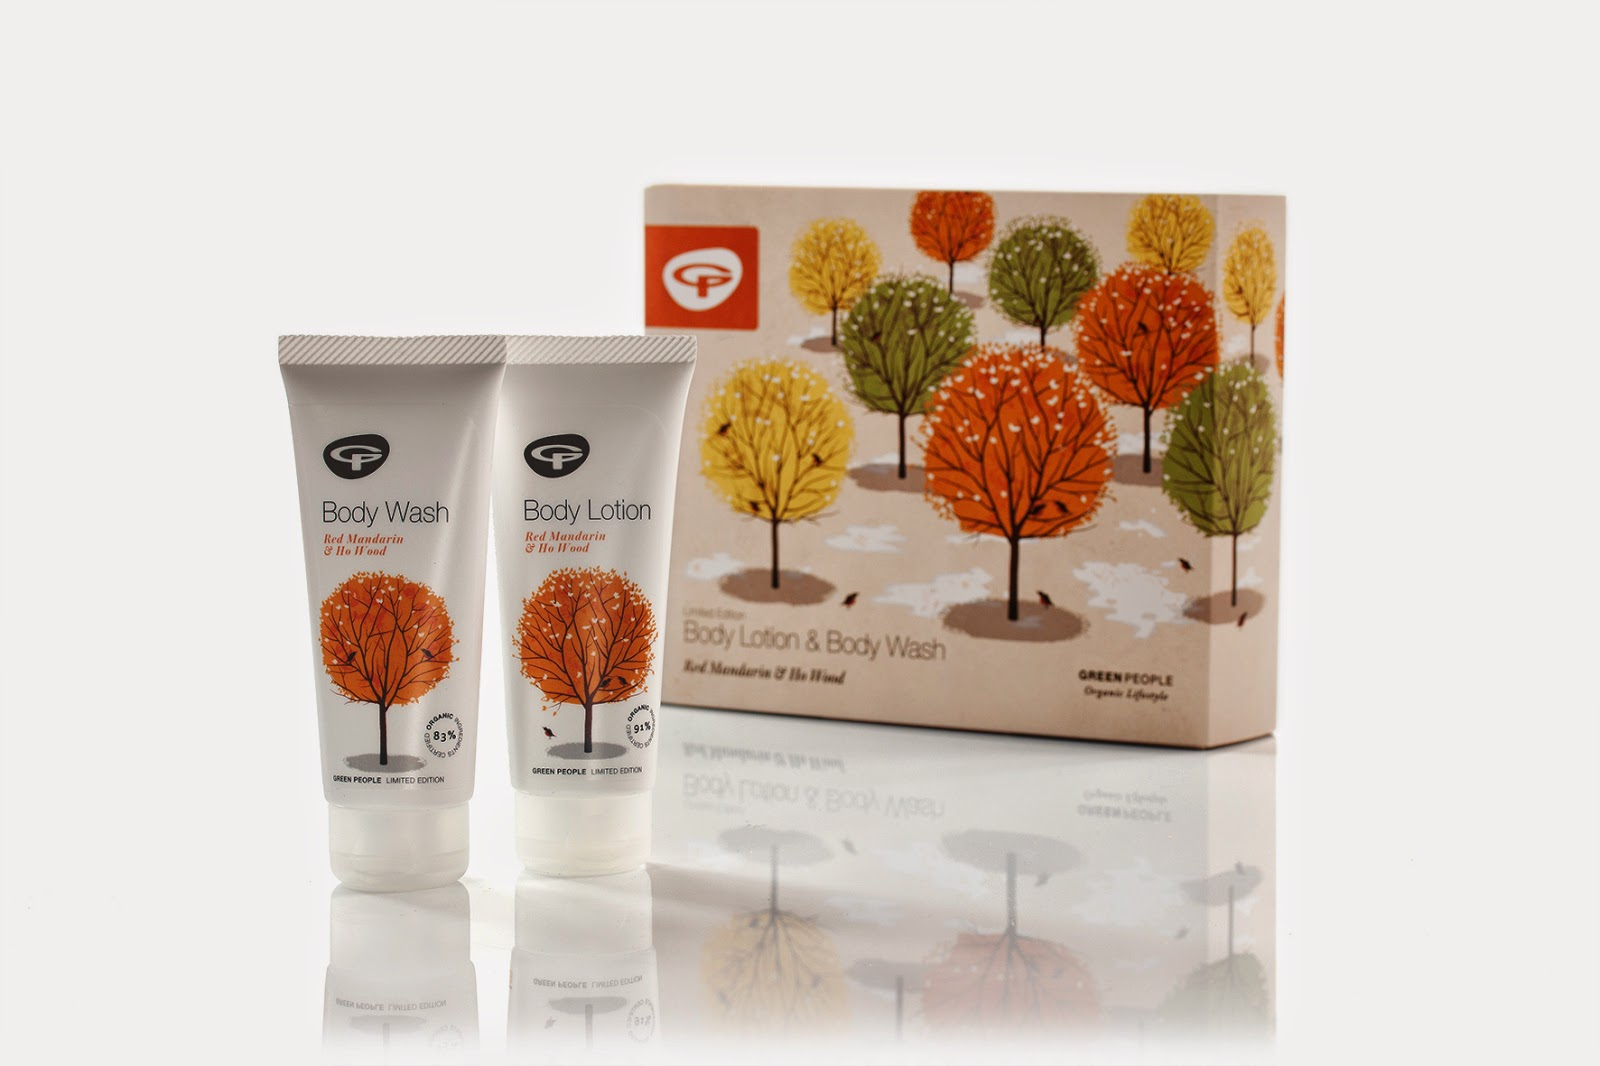 Limited Edition Gift Set from The Green People